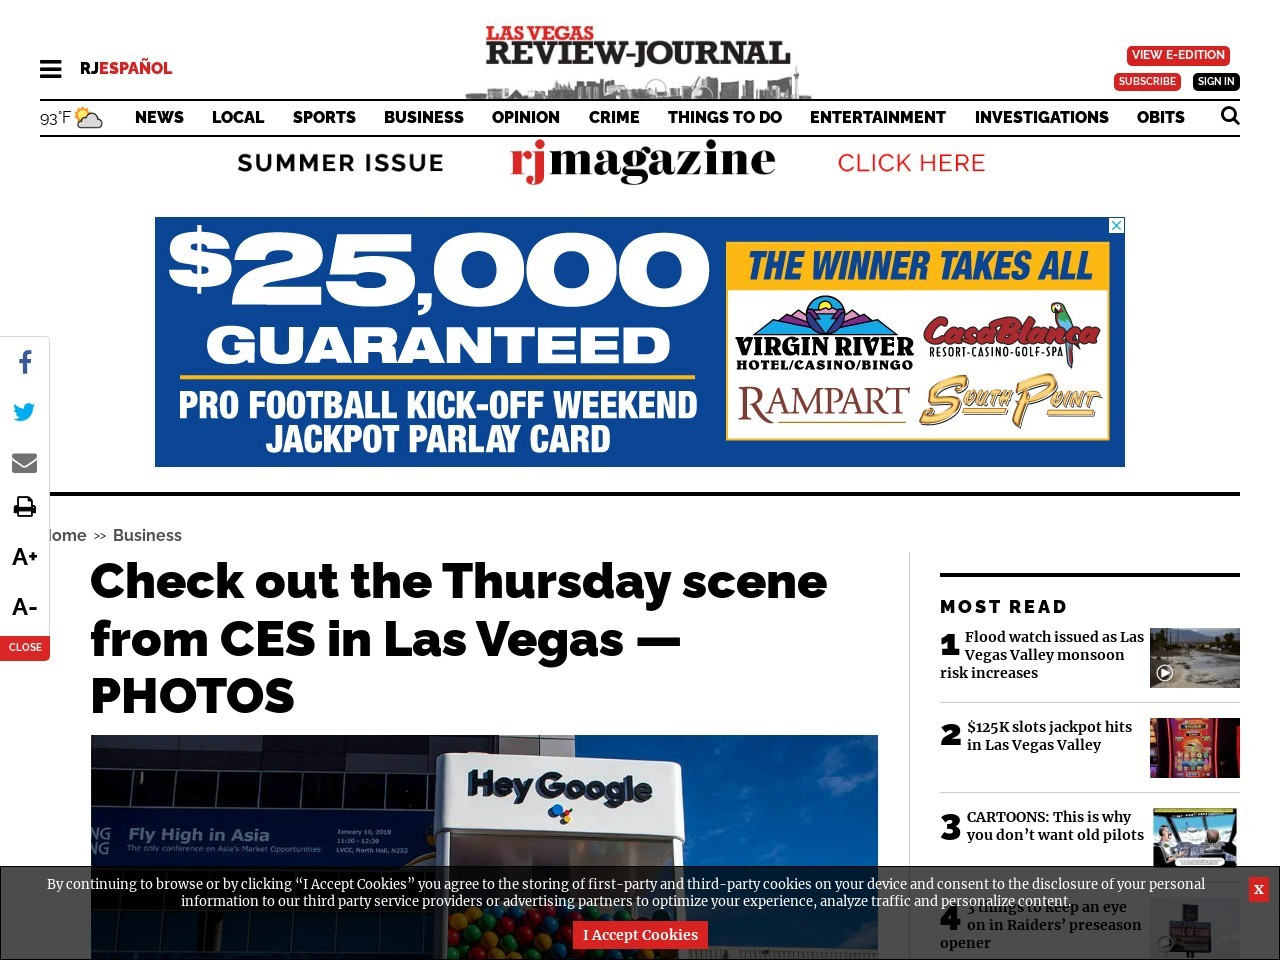 Check out the Thursday scene from CES in Las Vegas — PHOTOS